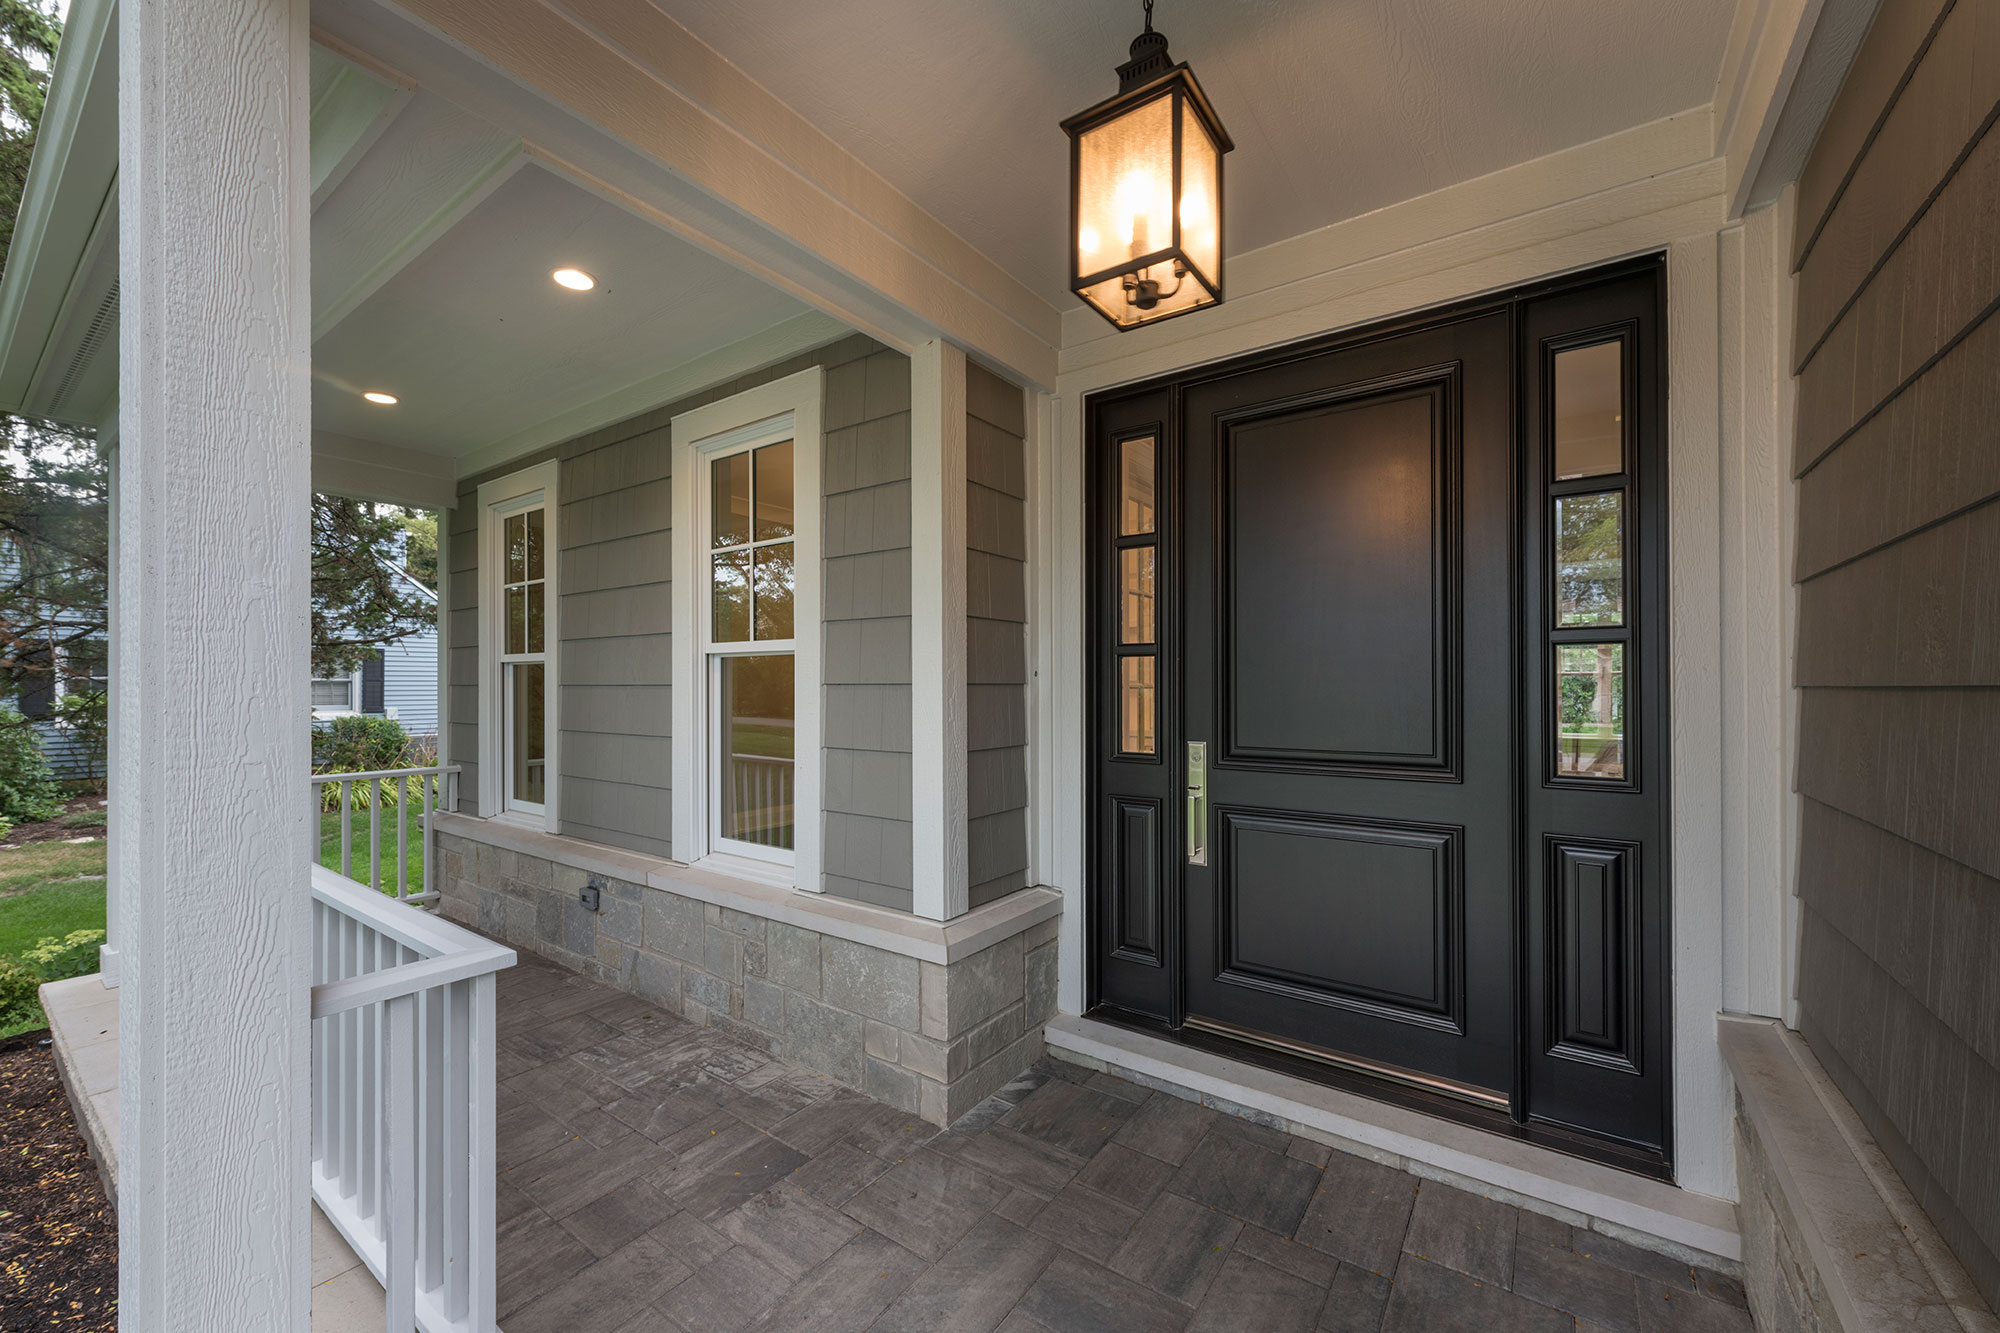 Wood Front Entry Doors in-Stock | classic two panel front entry door with sidelites, dark finish, exterior view DB-301PW 2SL - Glenview Doors - Custom Doors in Chicago